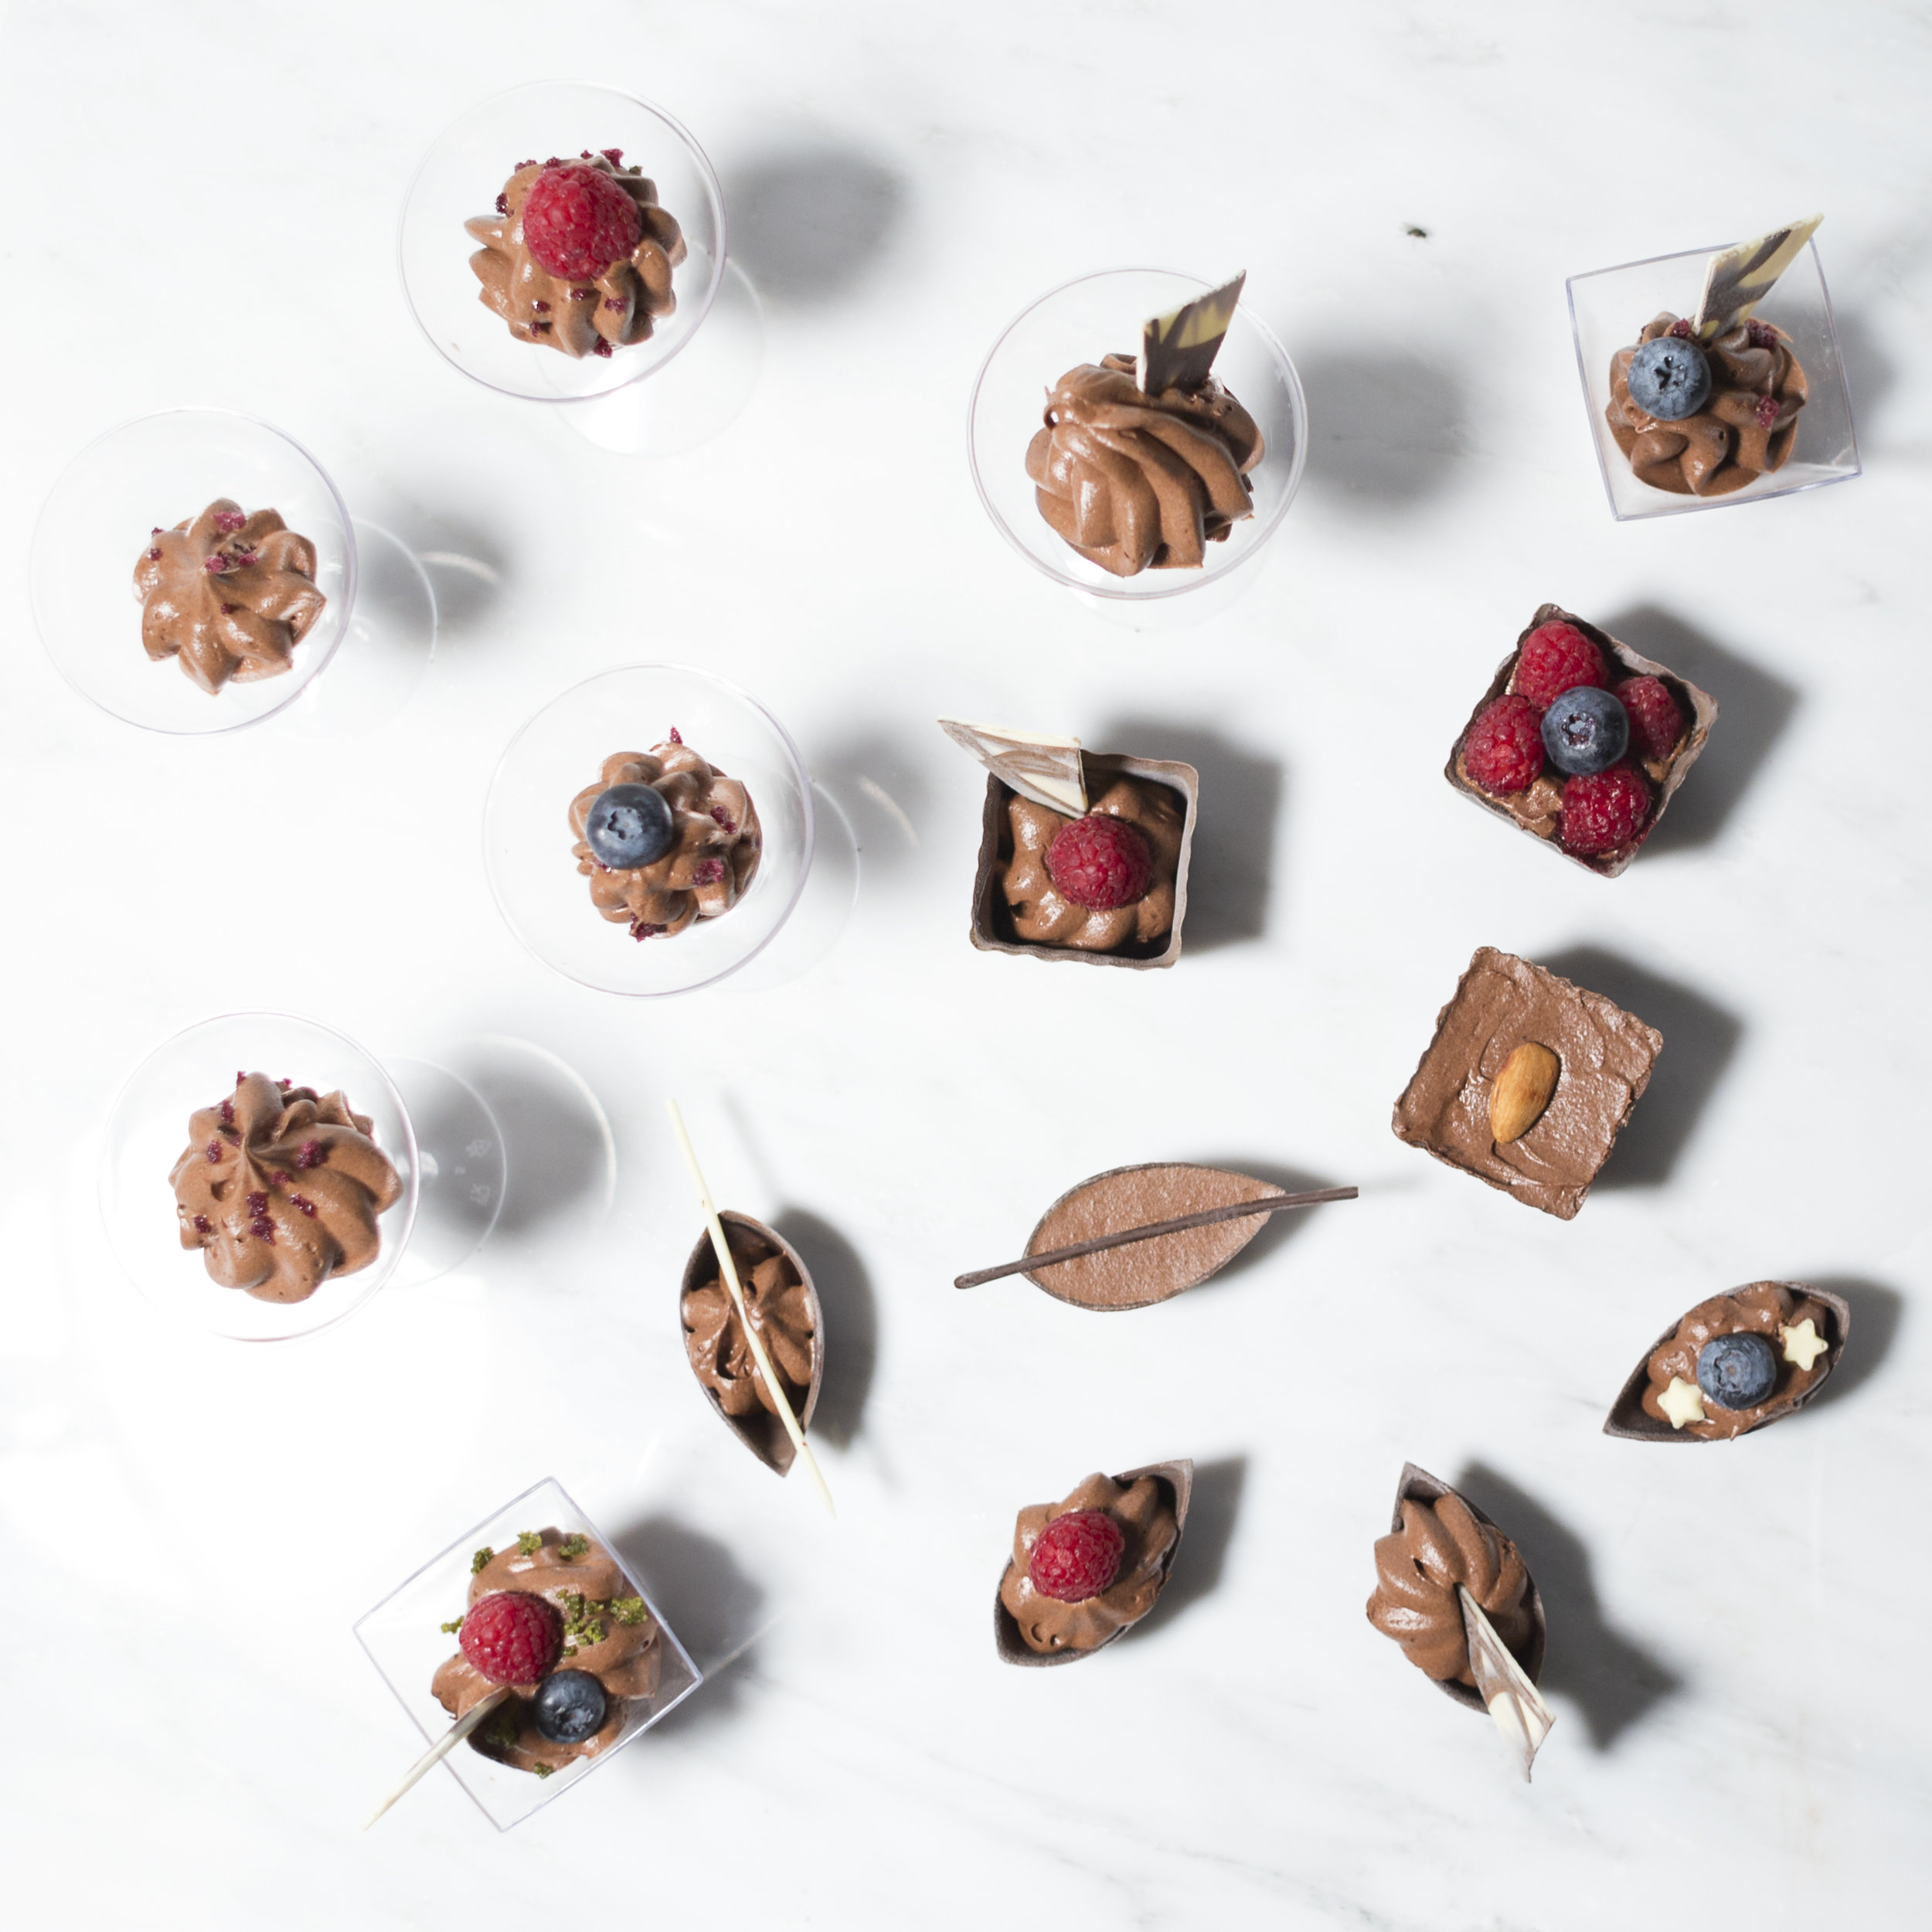 Petite Arts is a service that provides customized, healthy dessert boxes in NYC. -